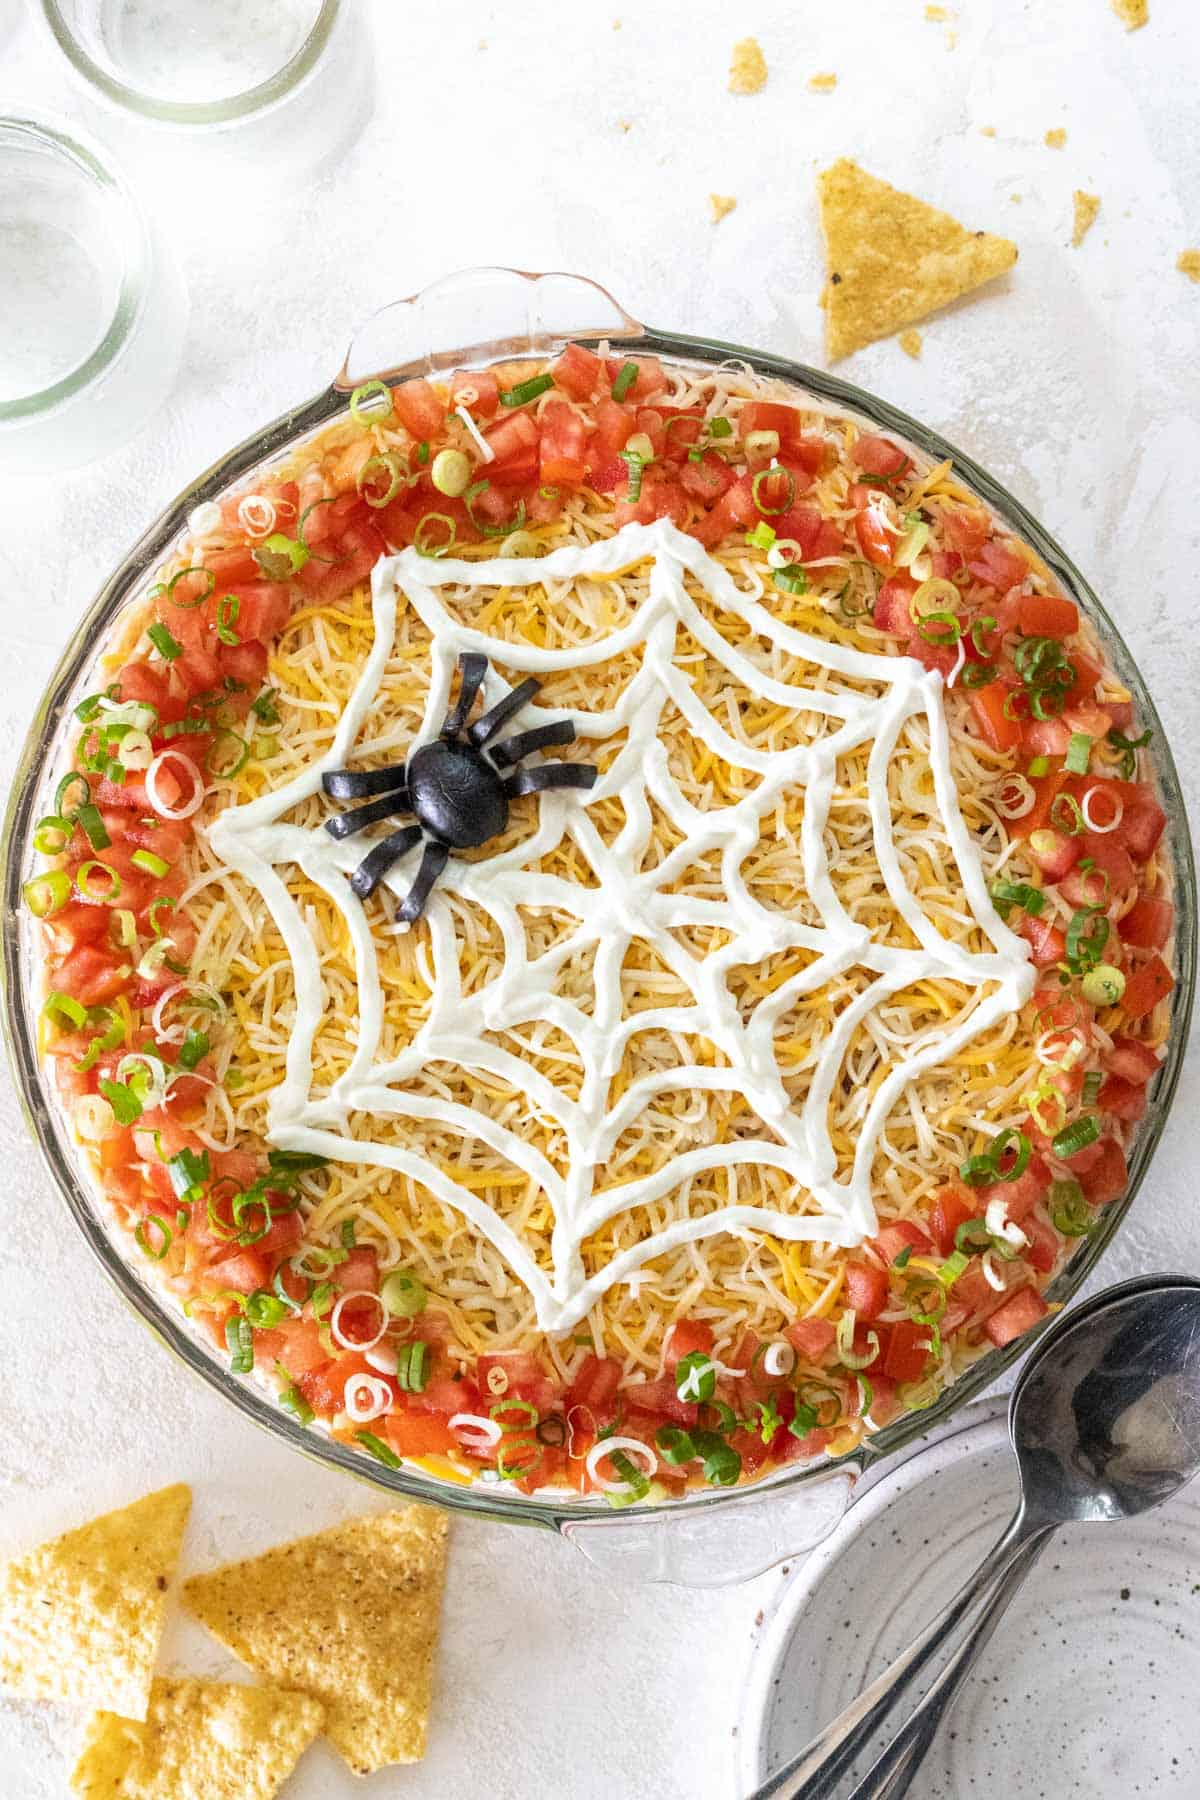 Spooky 7 layer Halloween taco dip in a large pie dish with chips around it.